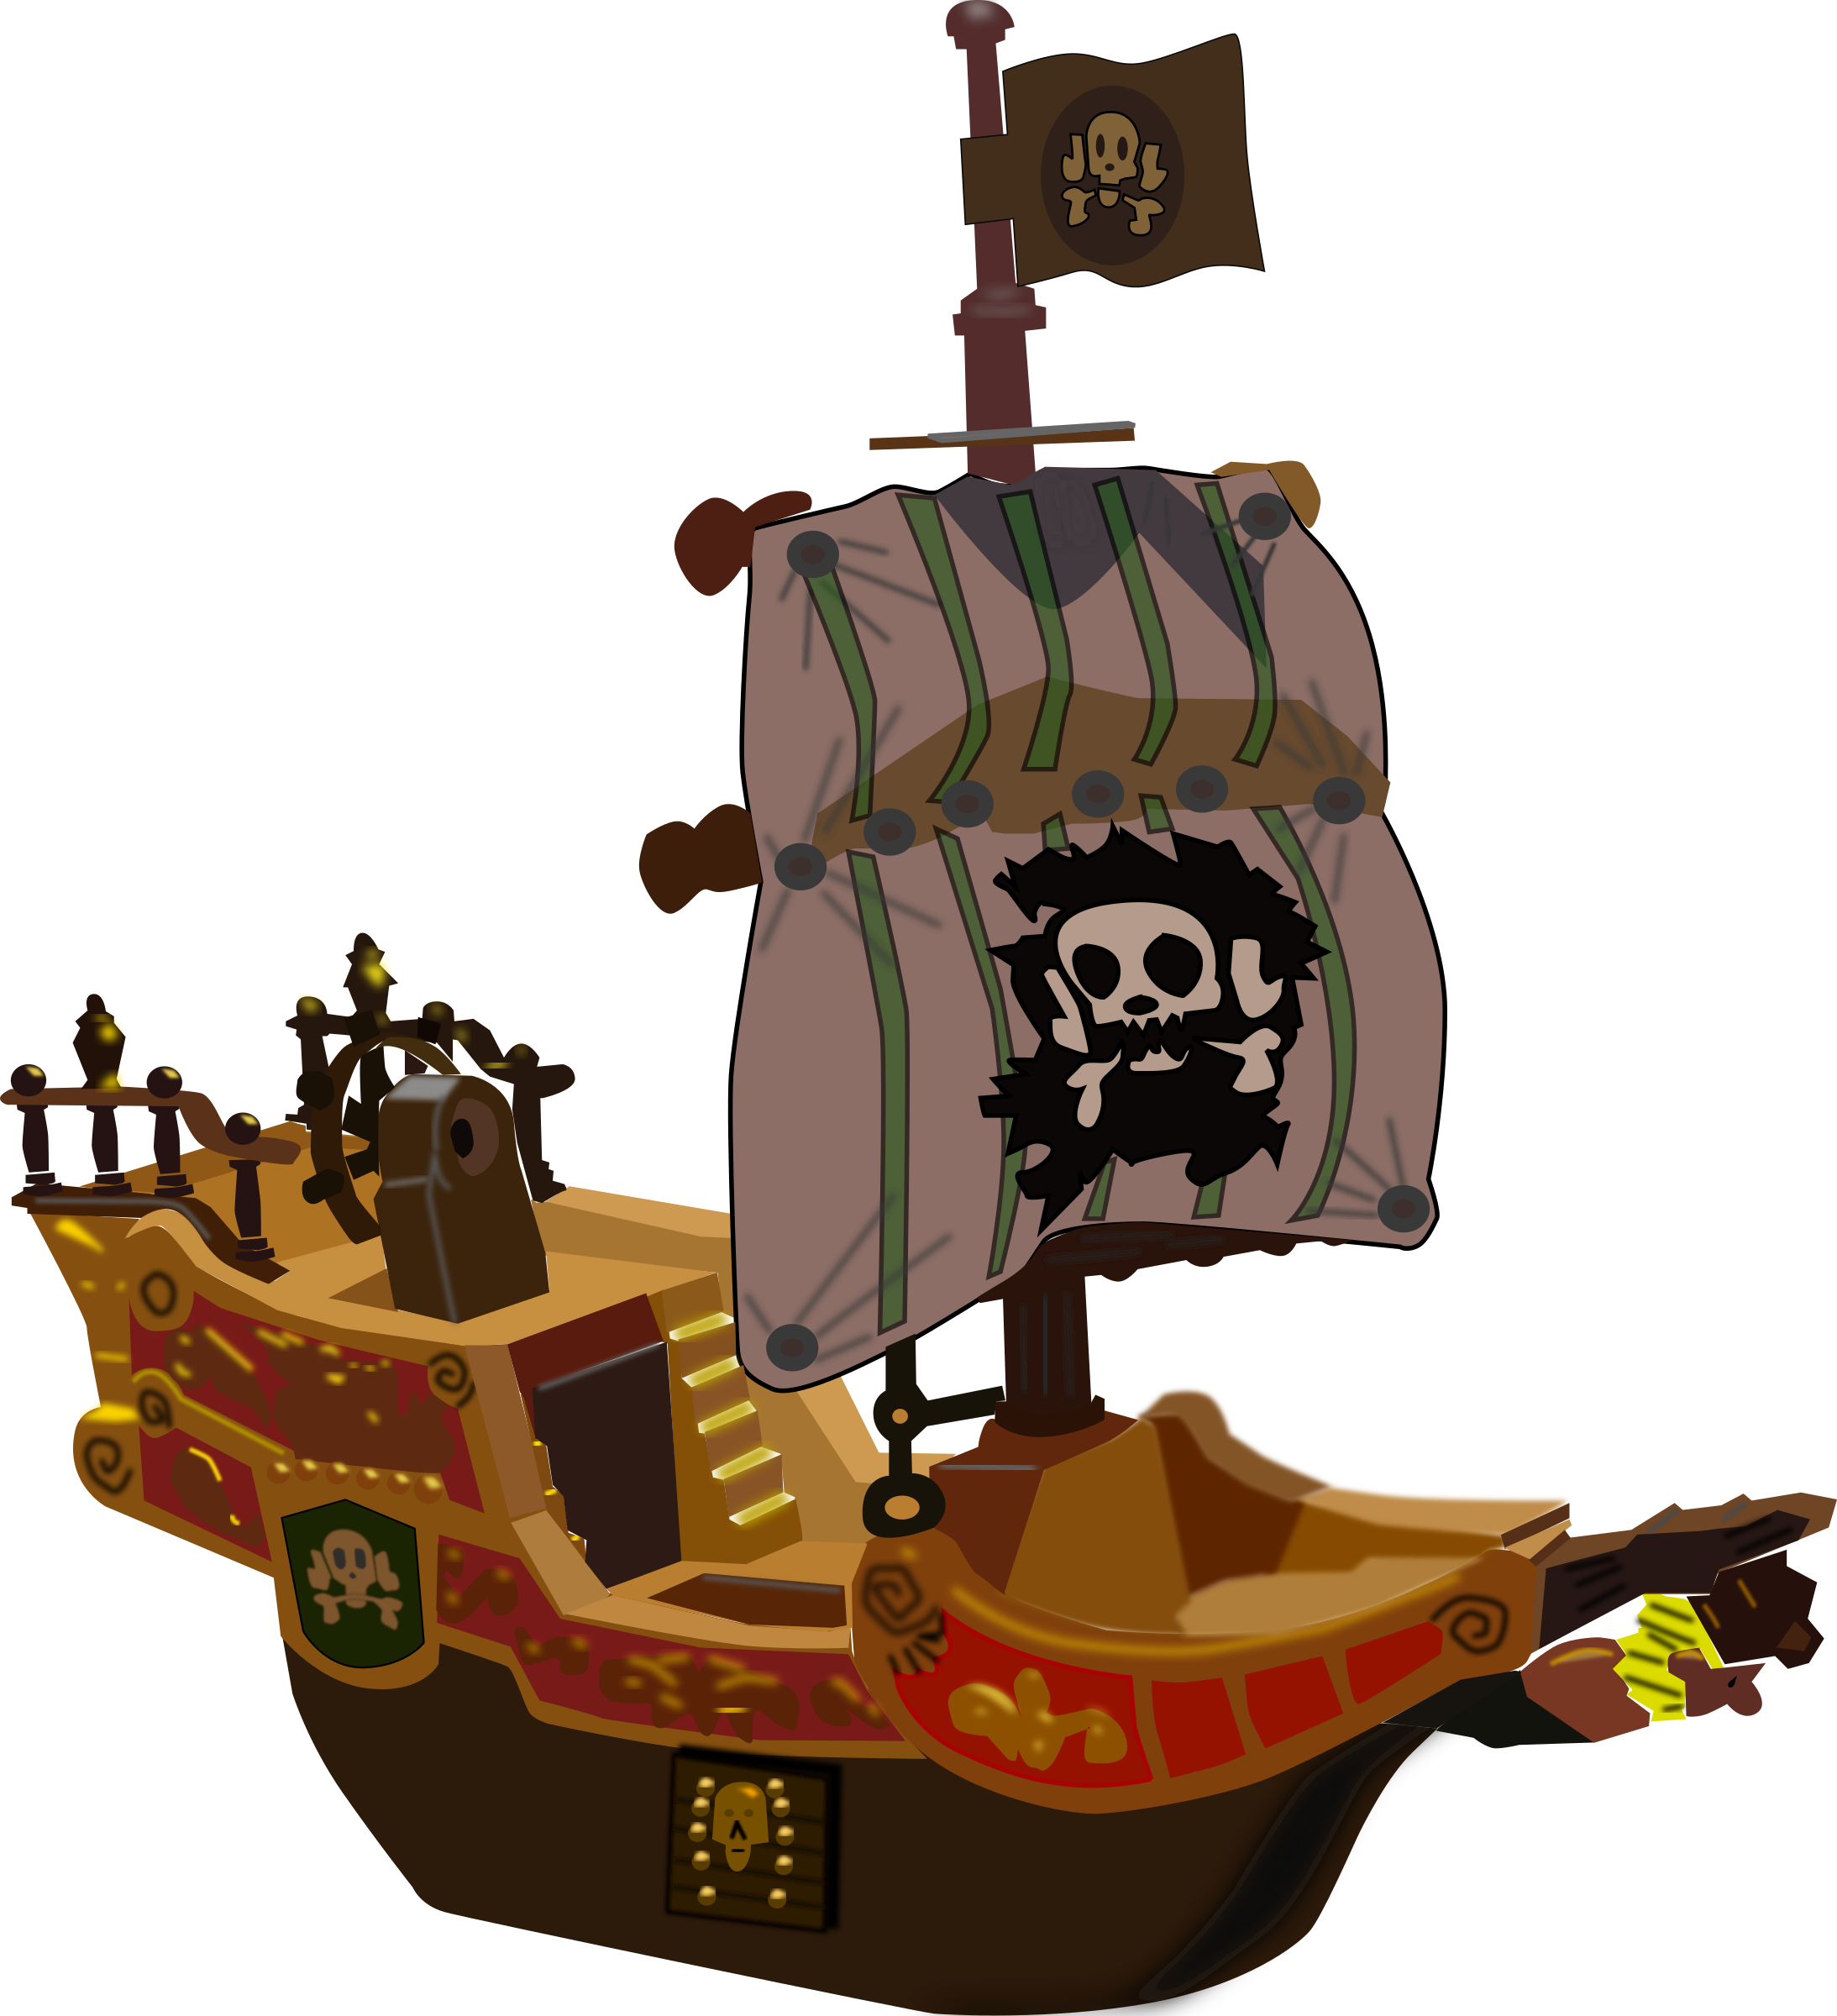 Clipart boat toy. Pirate ship big image